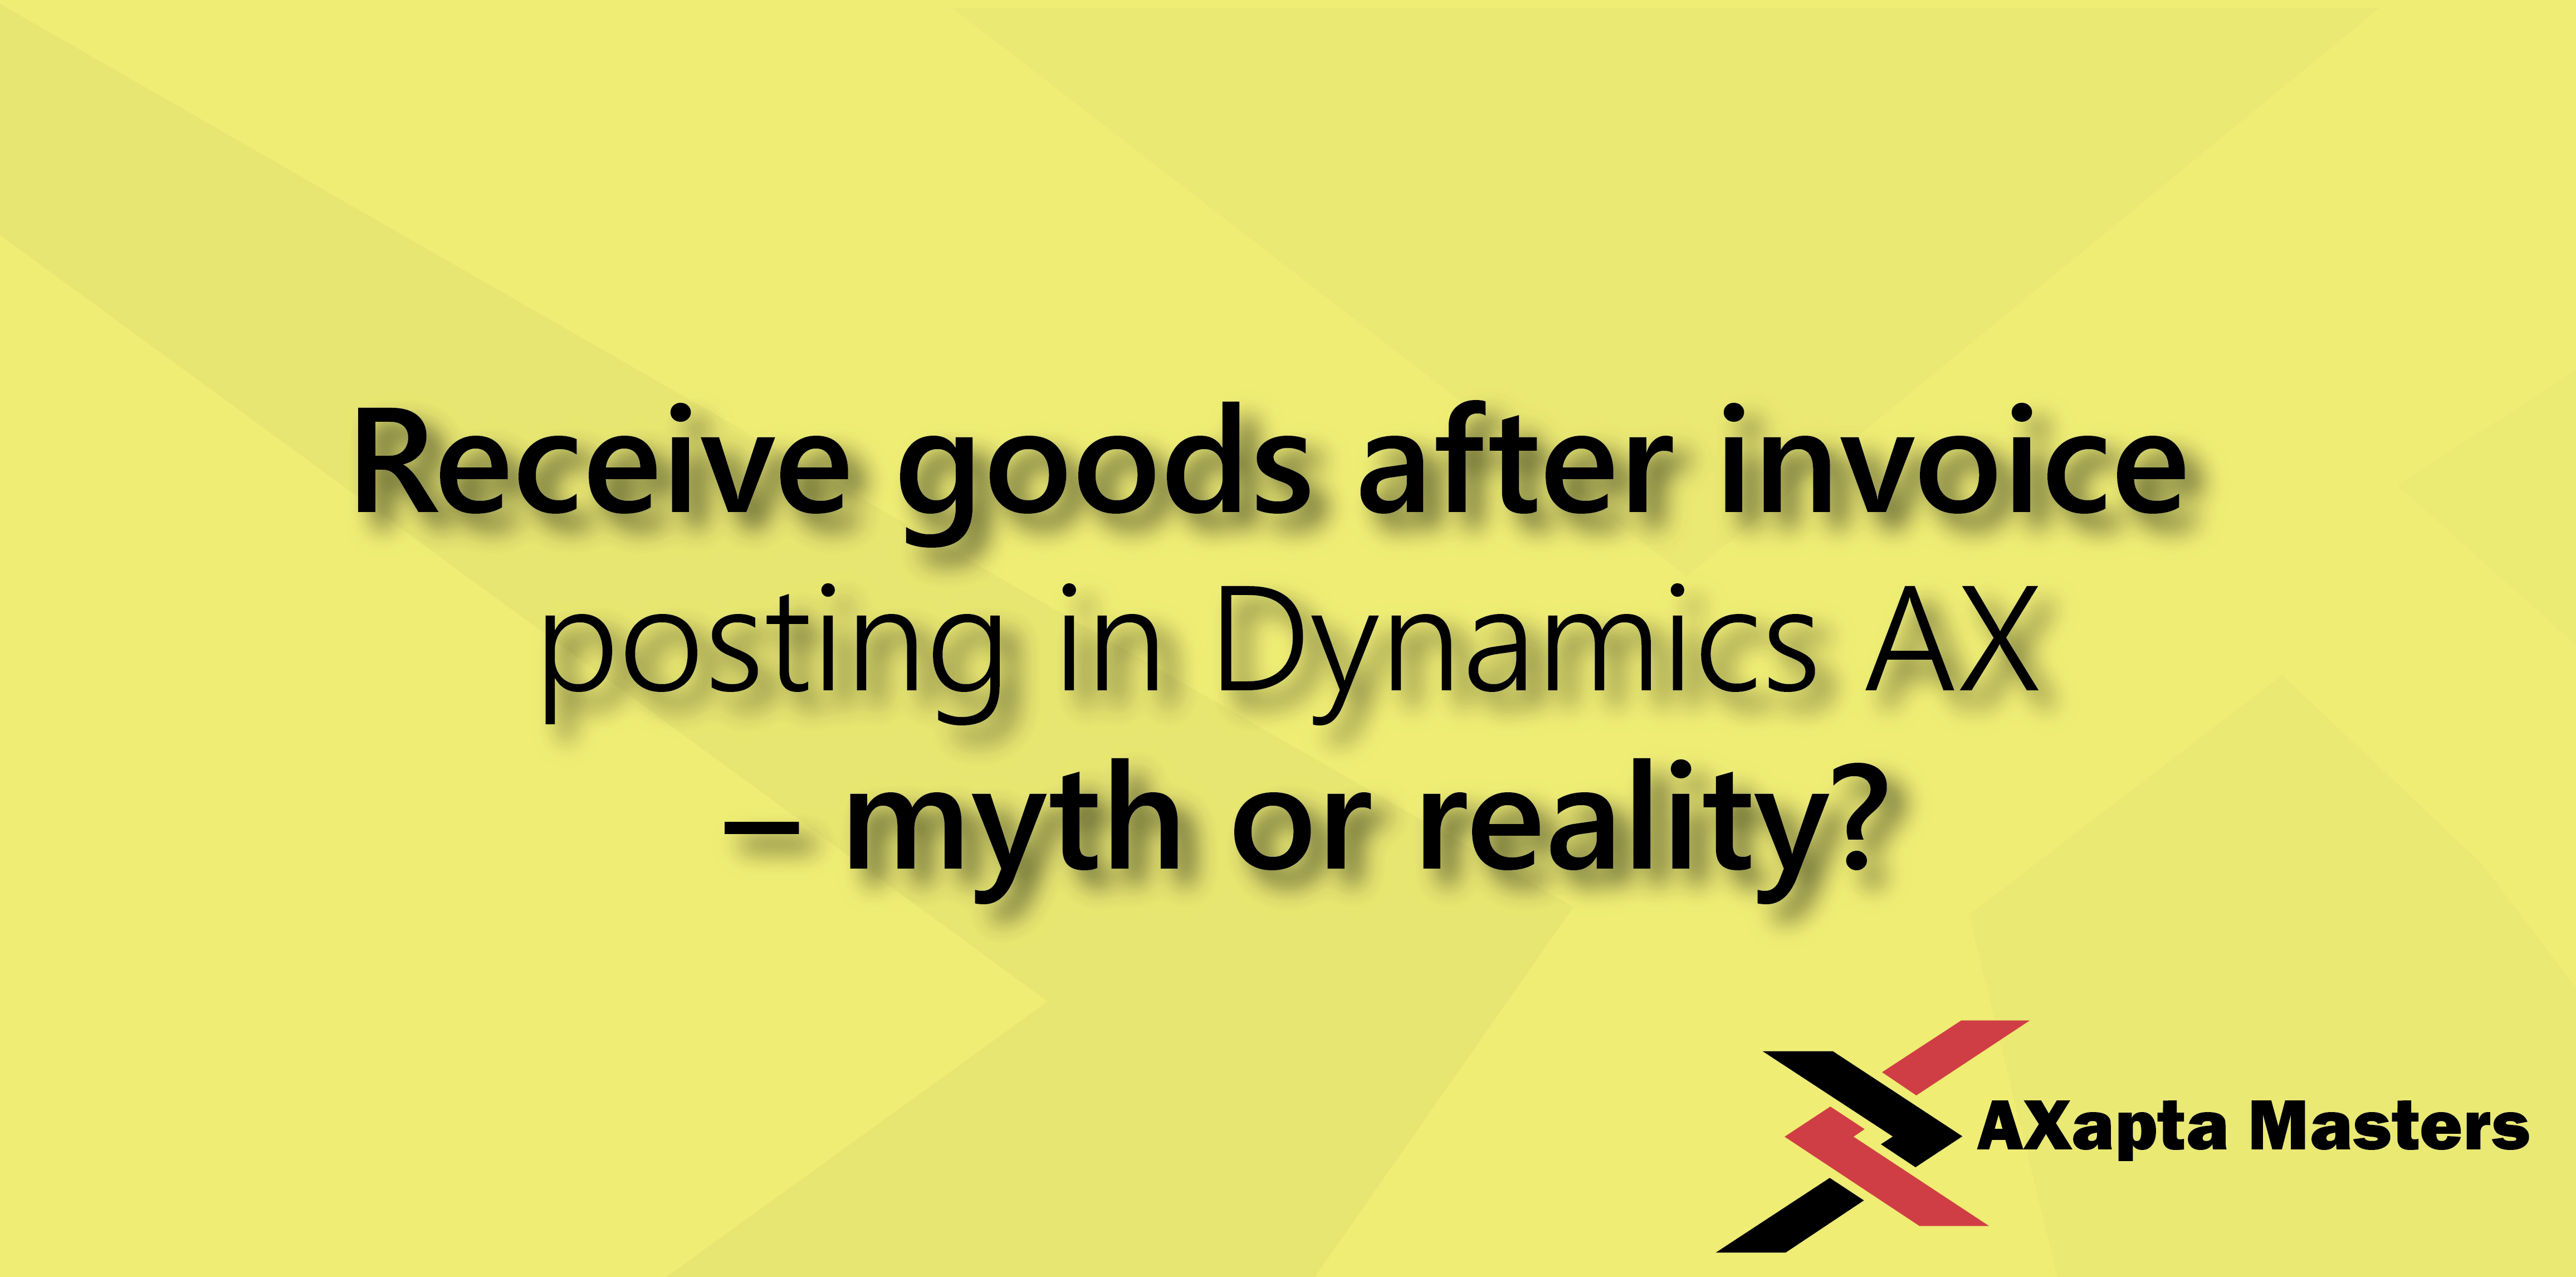 receive goods after invoice posting in dynamics ax myth or reality